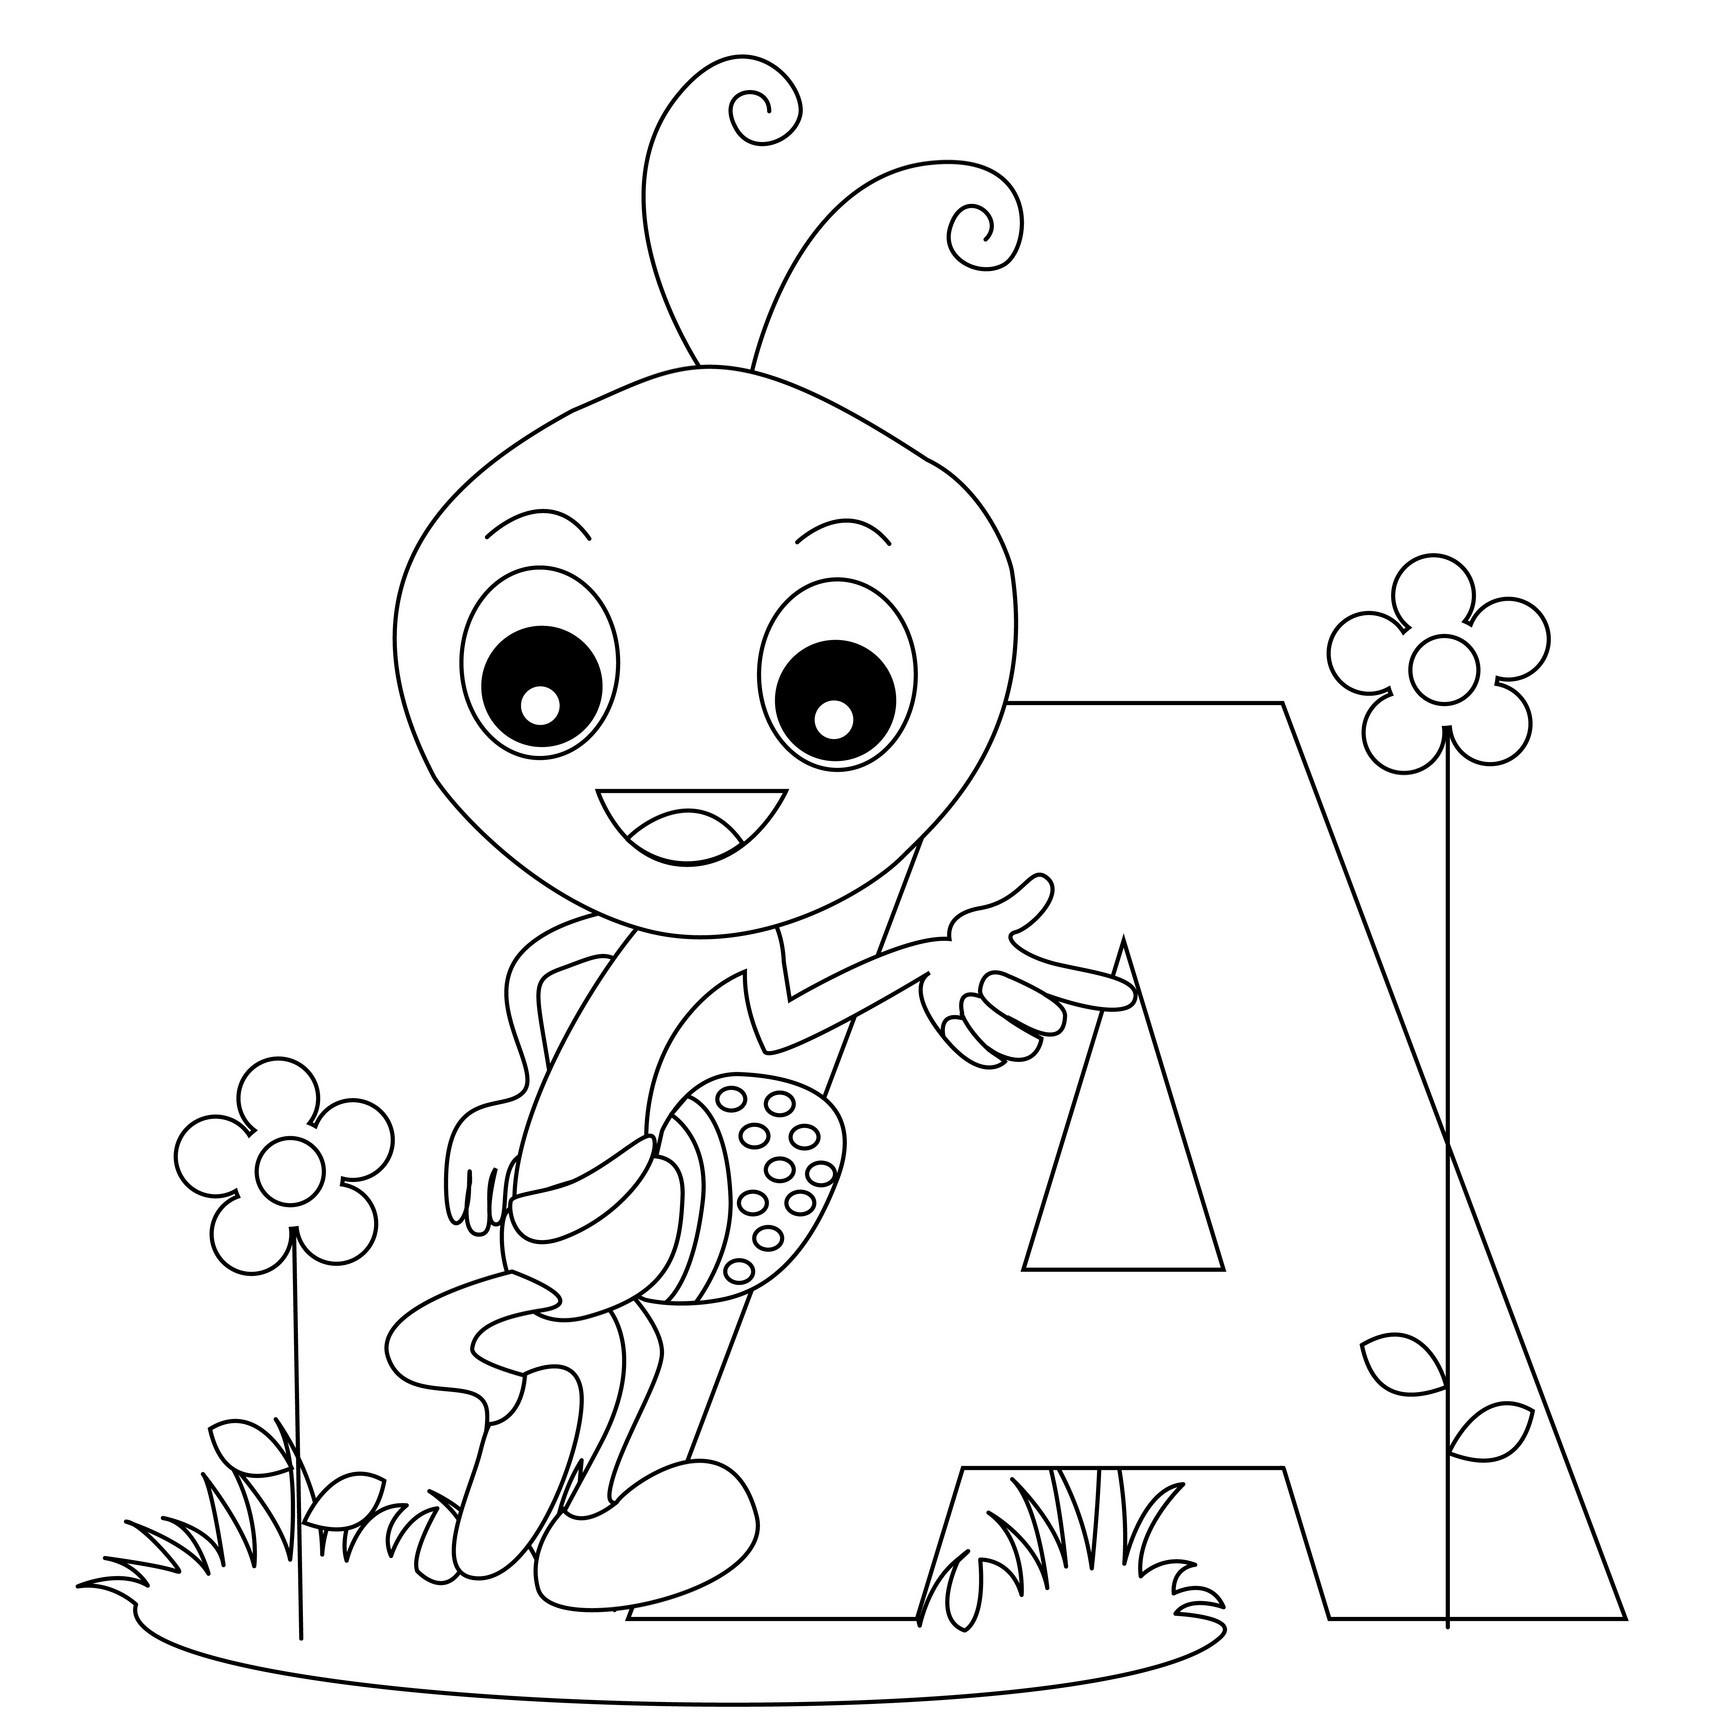 Alphabet i coloring pages - Alphabet Coloring Pages Letter A